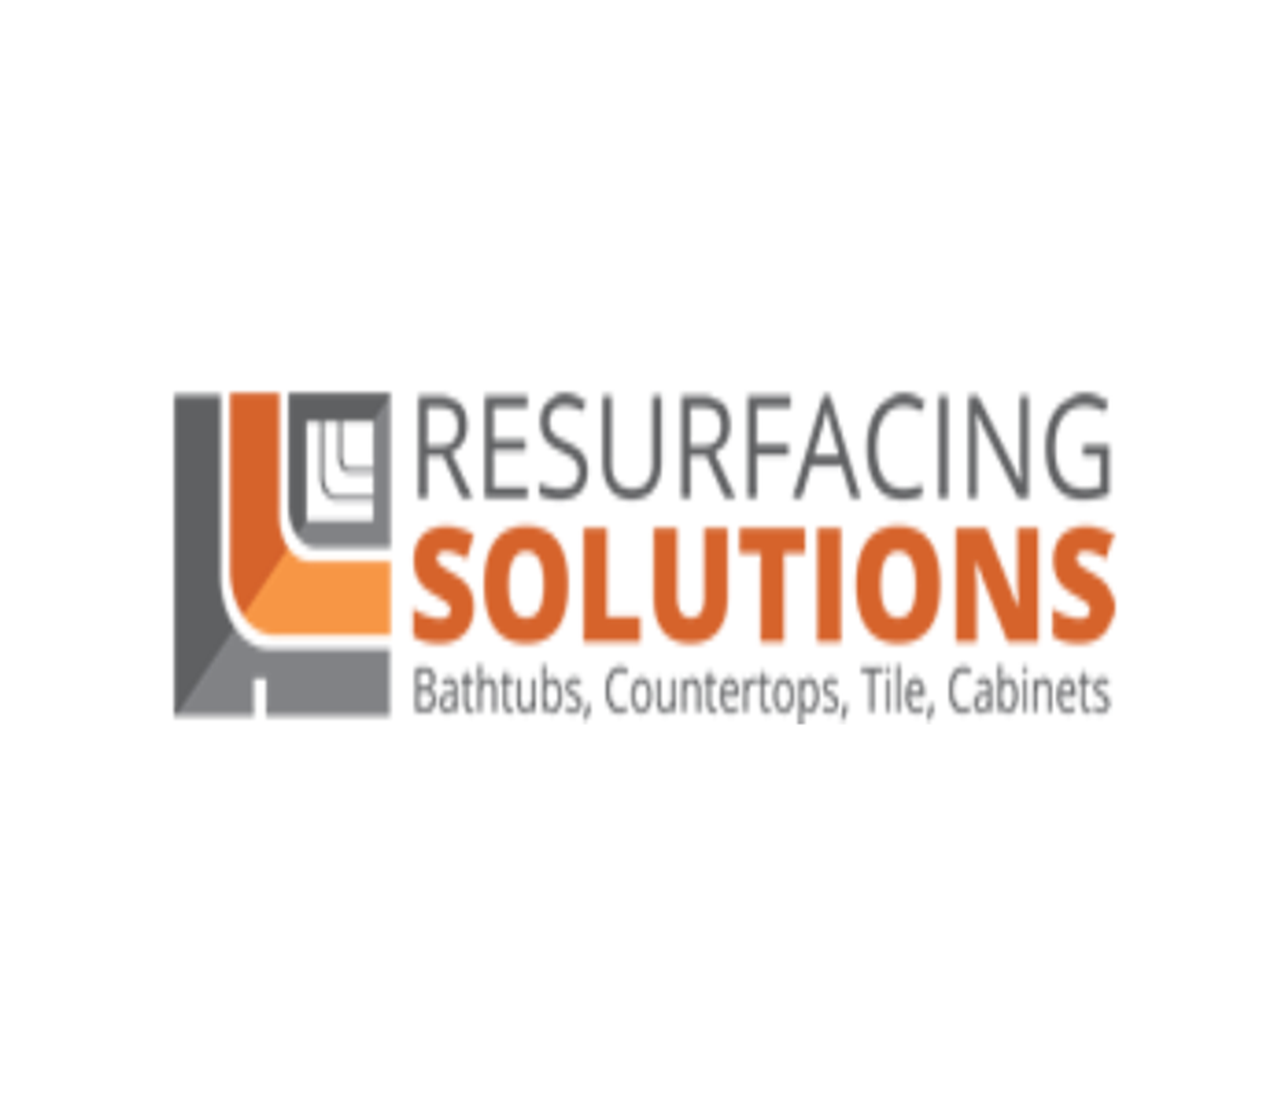 RESURFACING SOLUTIONS image